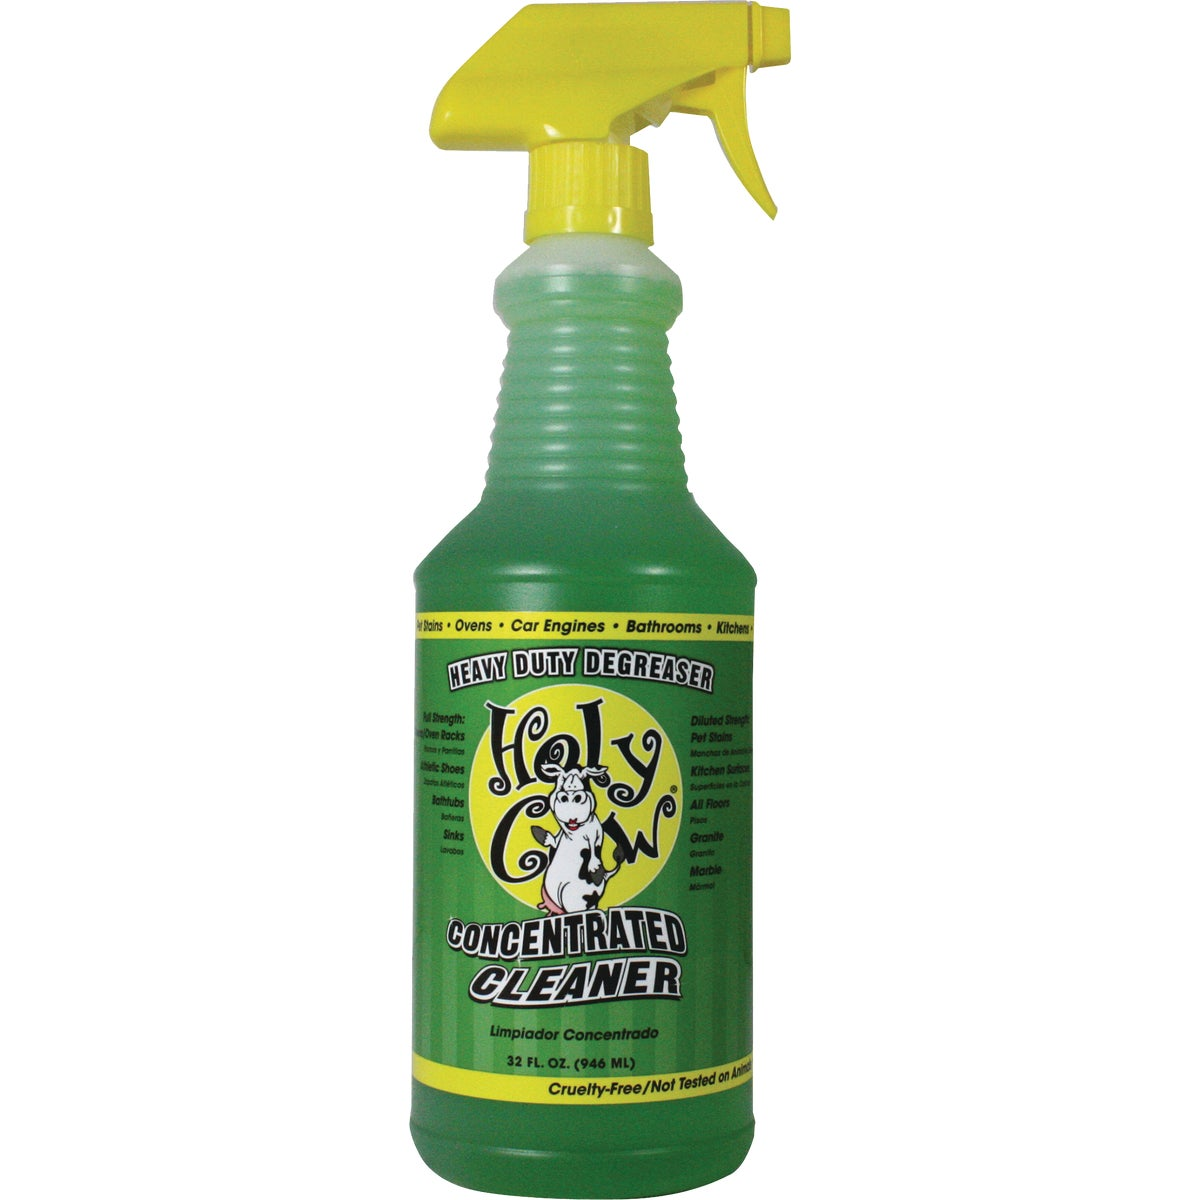 32OZ CONCENTRATE CLEANER